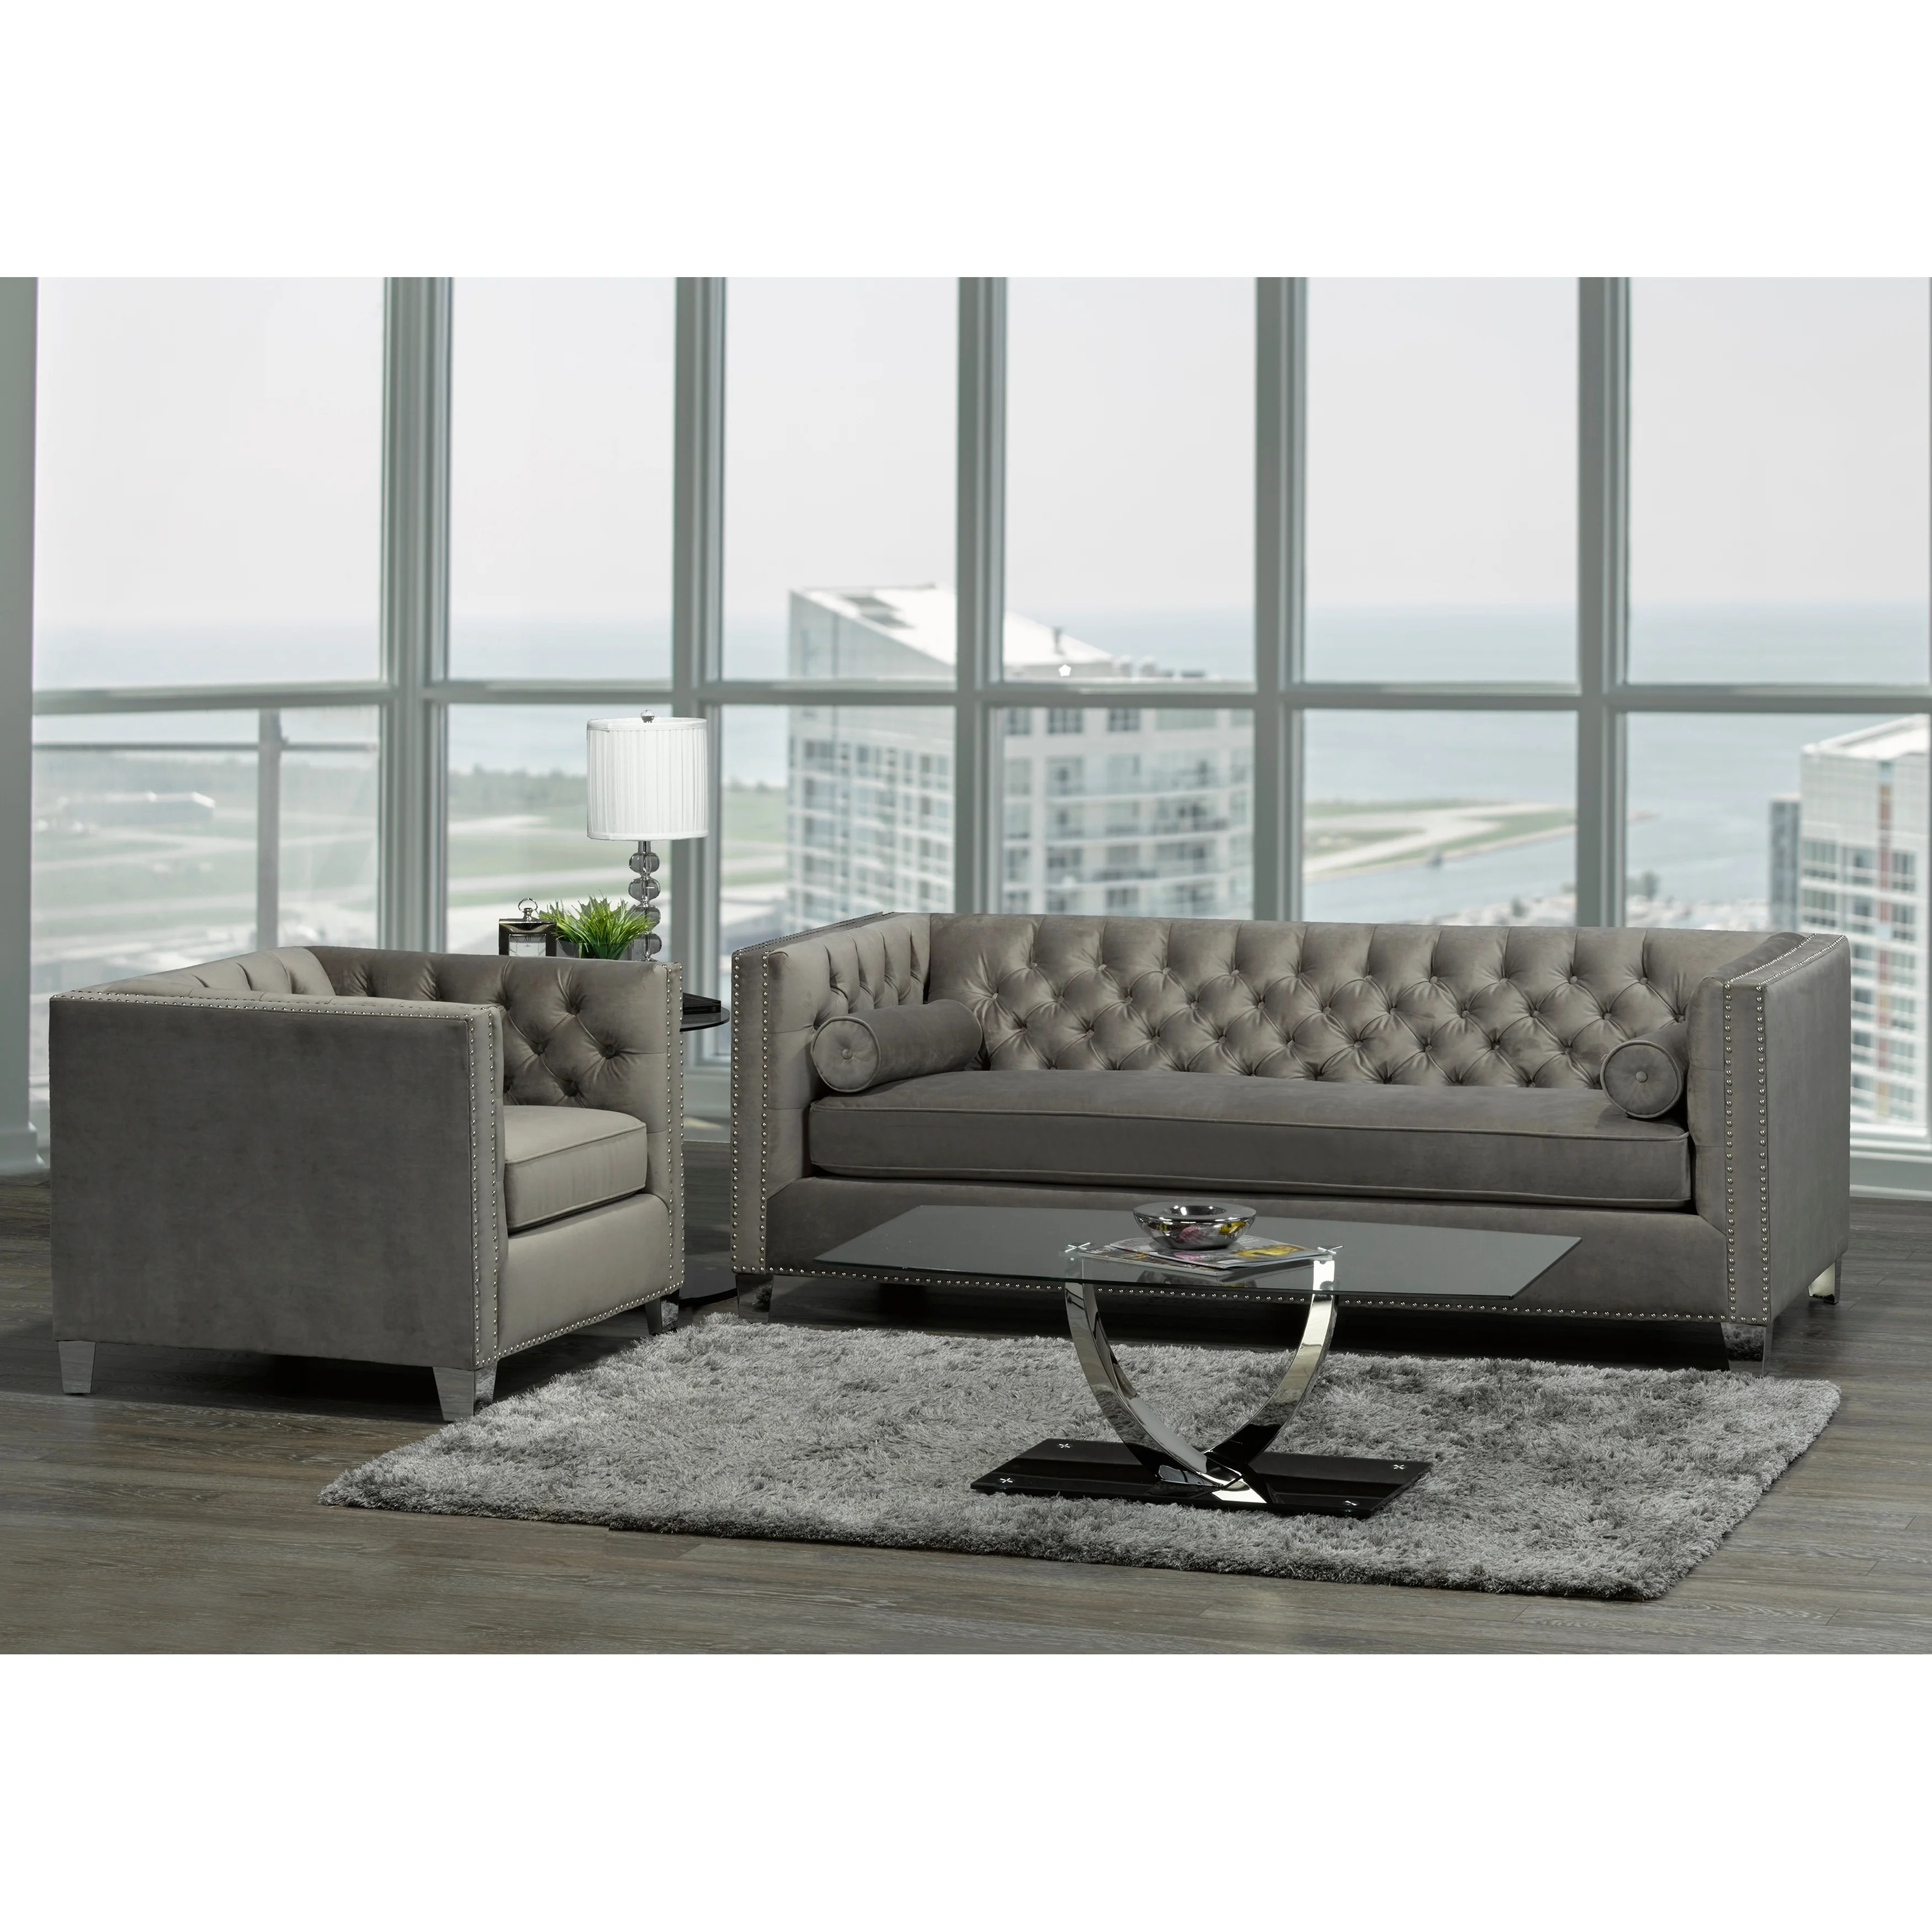 Hank Modern Grey Velvet Tufted Nailhead Sofa And Chair Natural On Sale Overstock 20847542